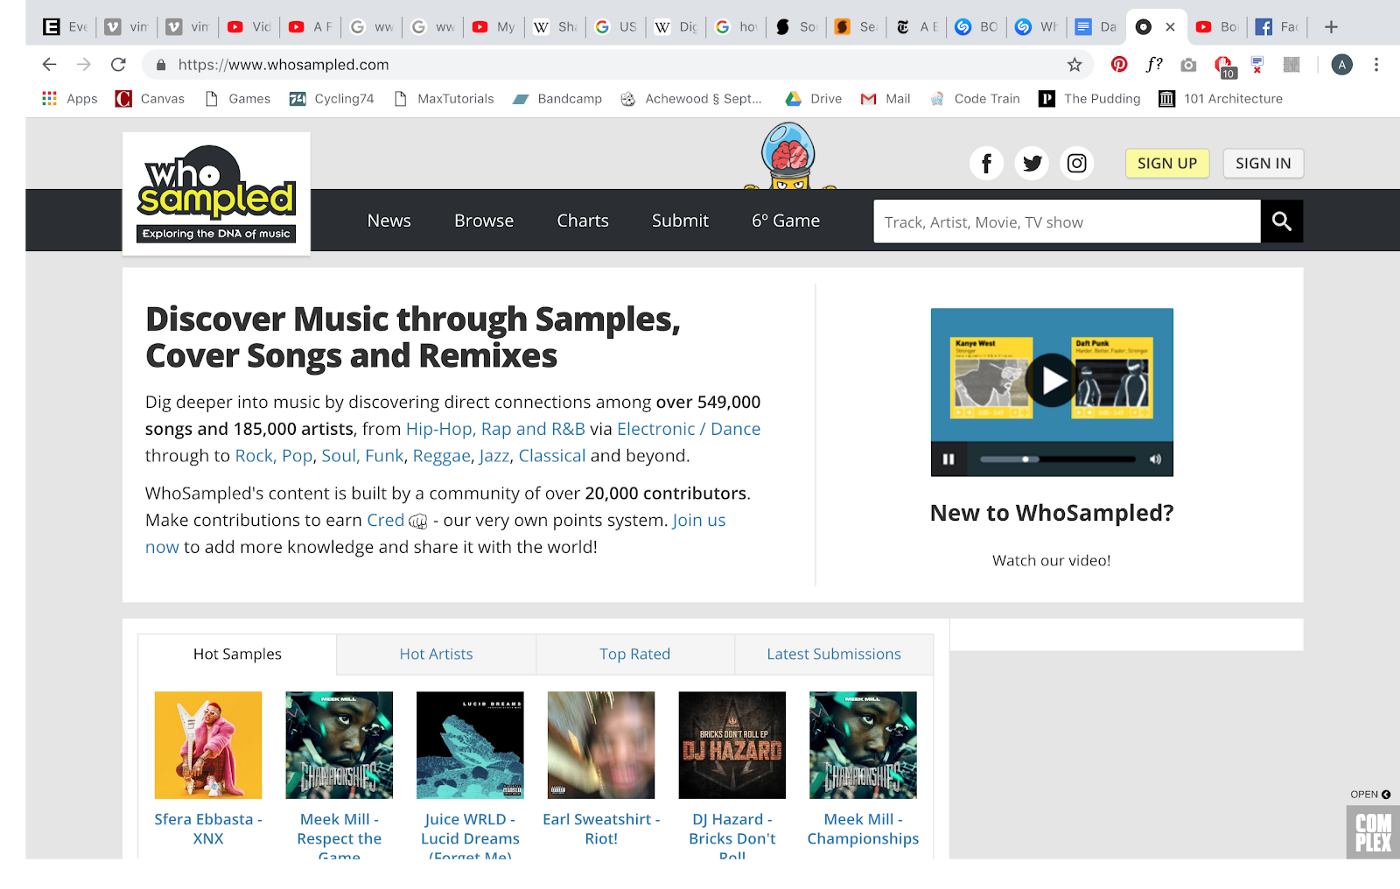 Shazamed: A Data Story Noire about Music Streaming - Anna